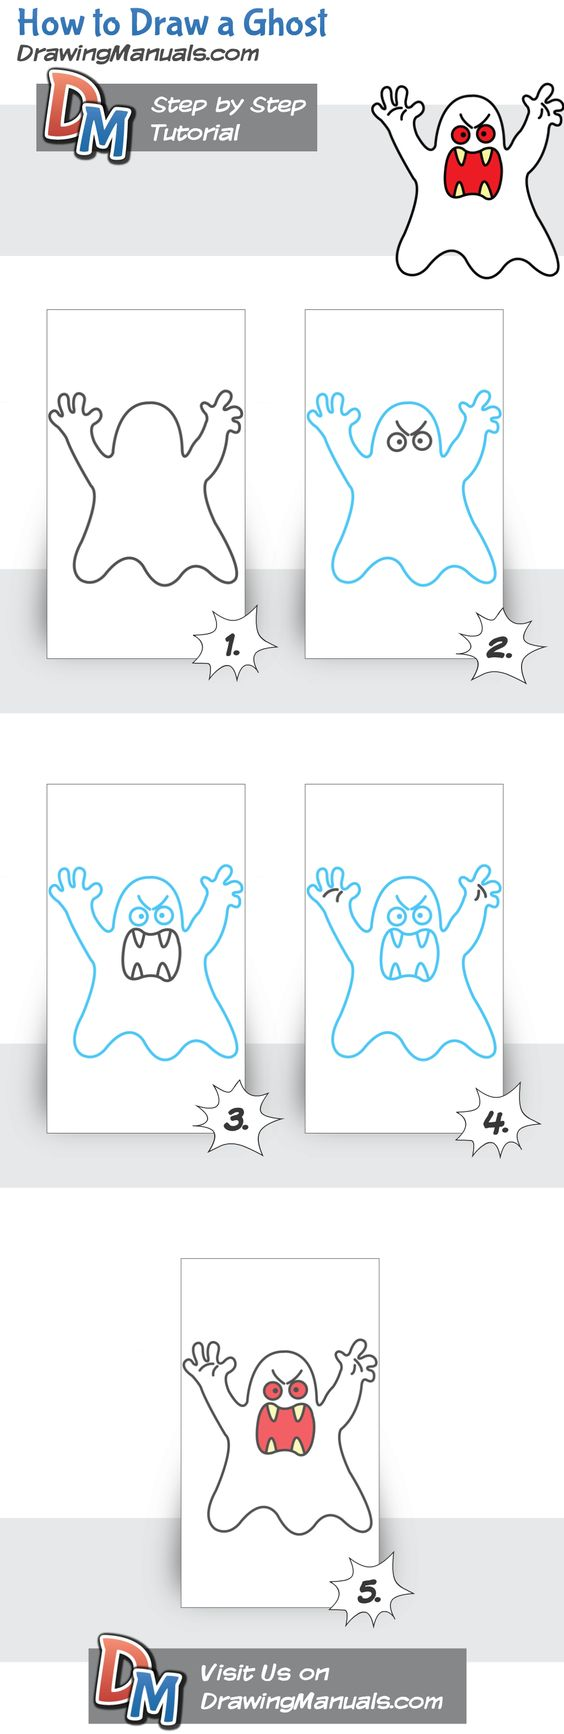 Haww! Scary ghost drawing